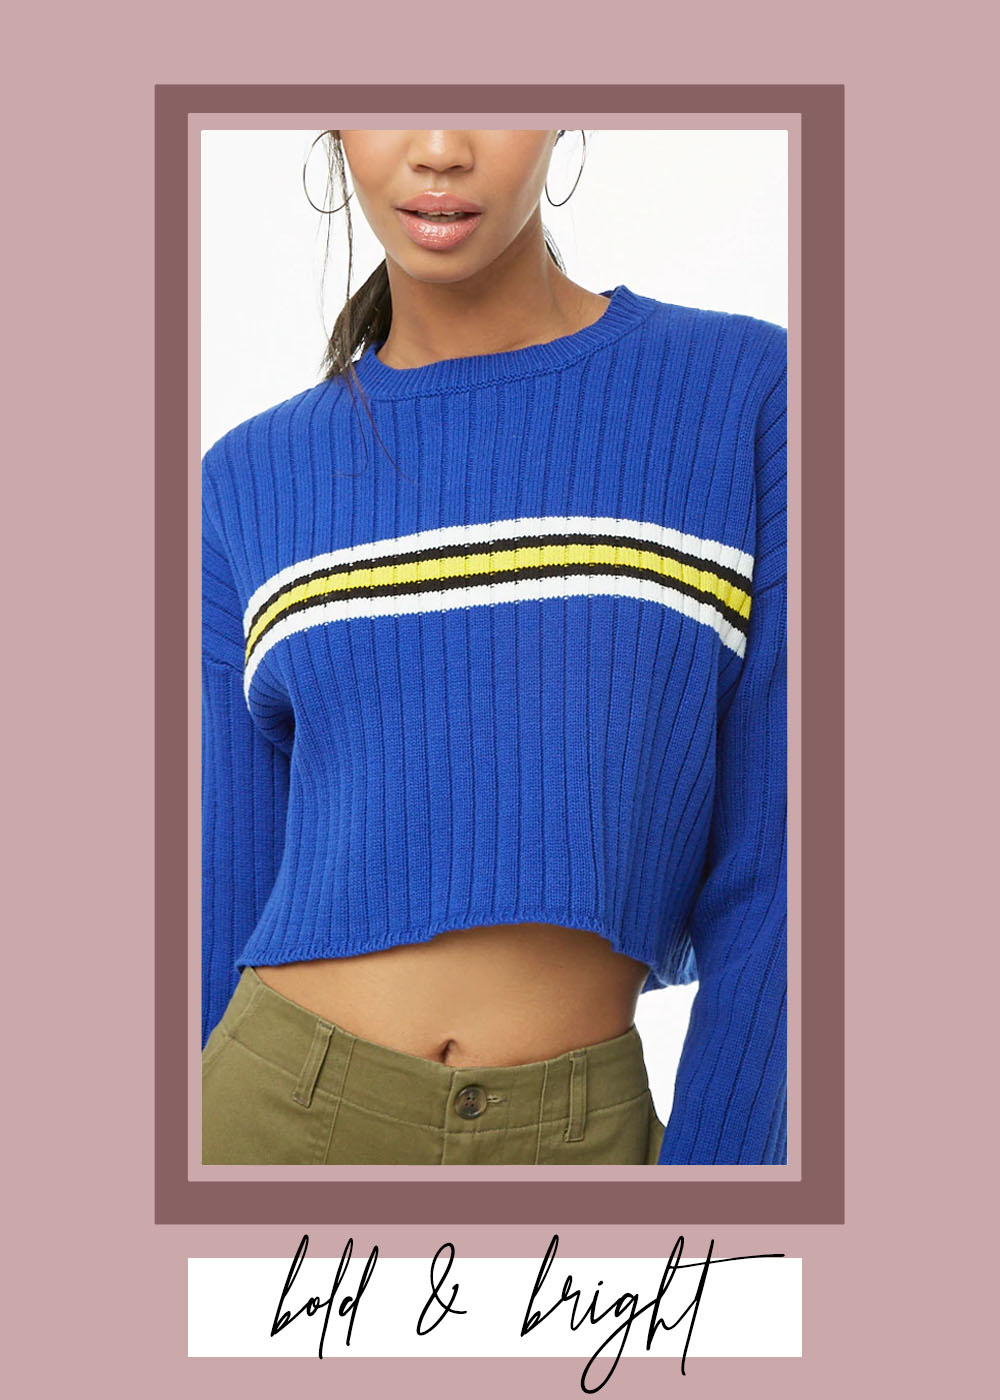 007. - STRIPED-TRIM CROPPED SWEATERForever 21 // $20